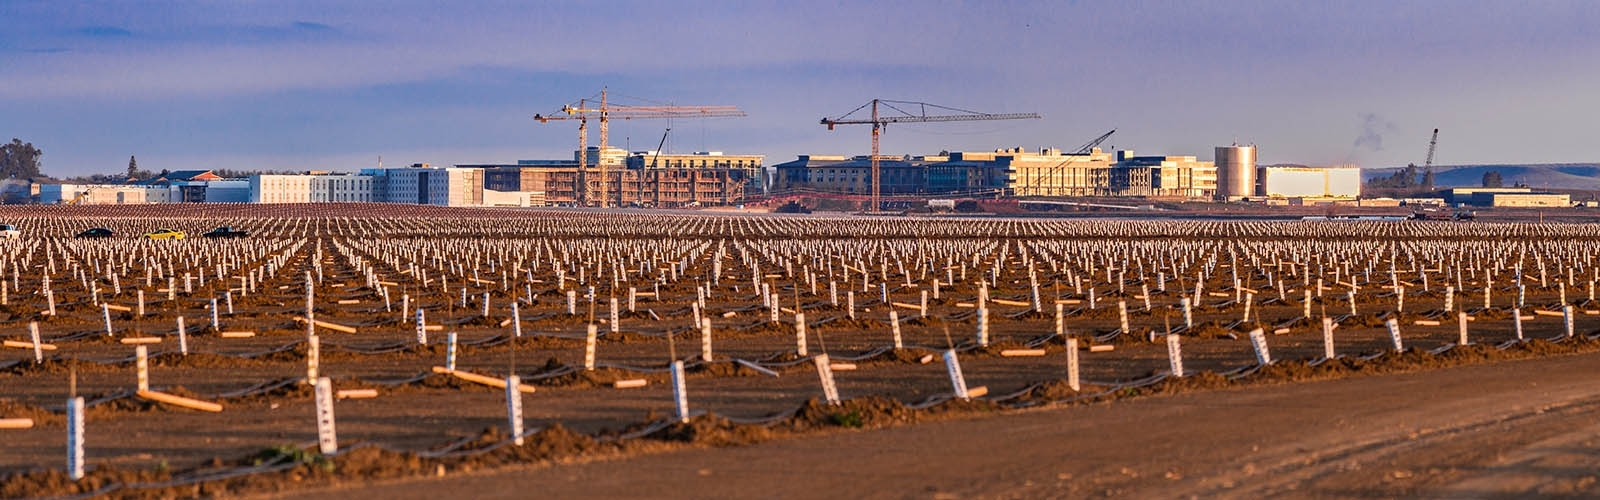 Uc merced a field of newly planted trees in the foreground with large construction project in the background fandeluxe Image collections